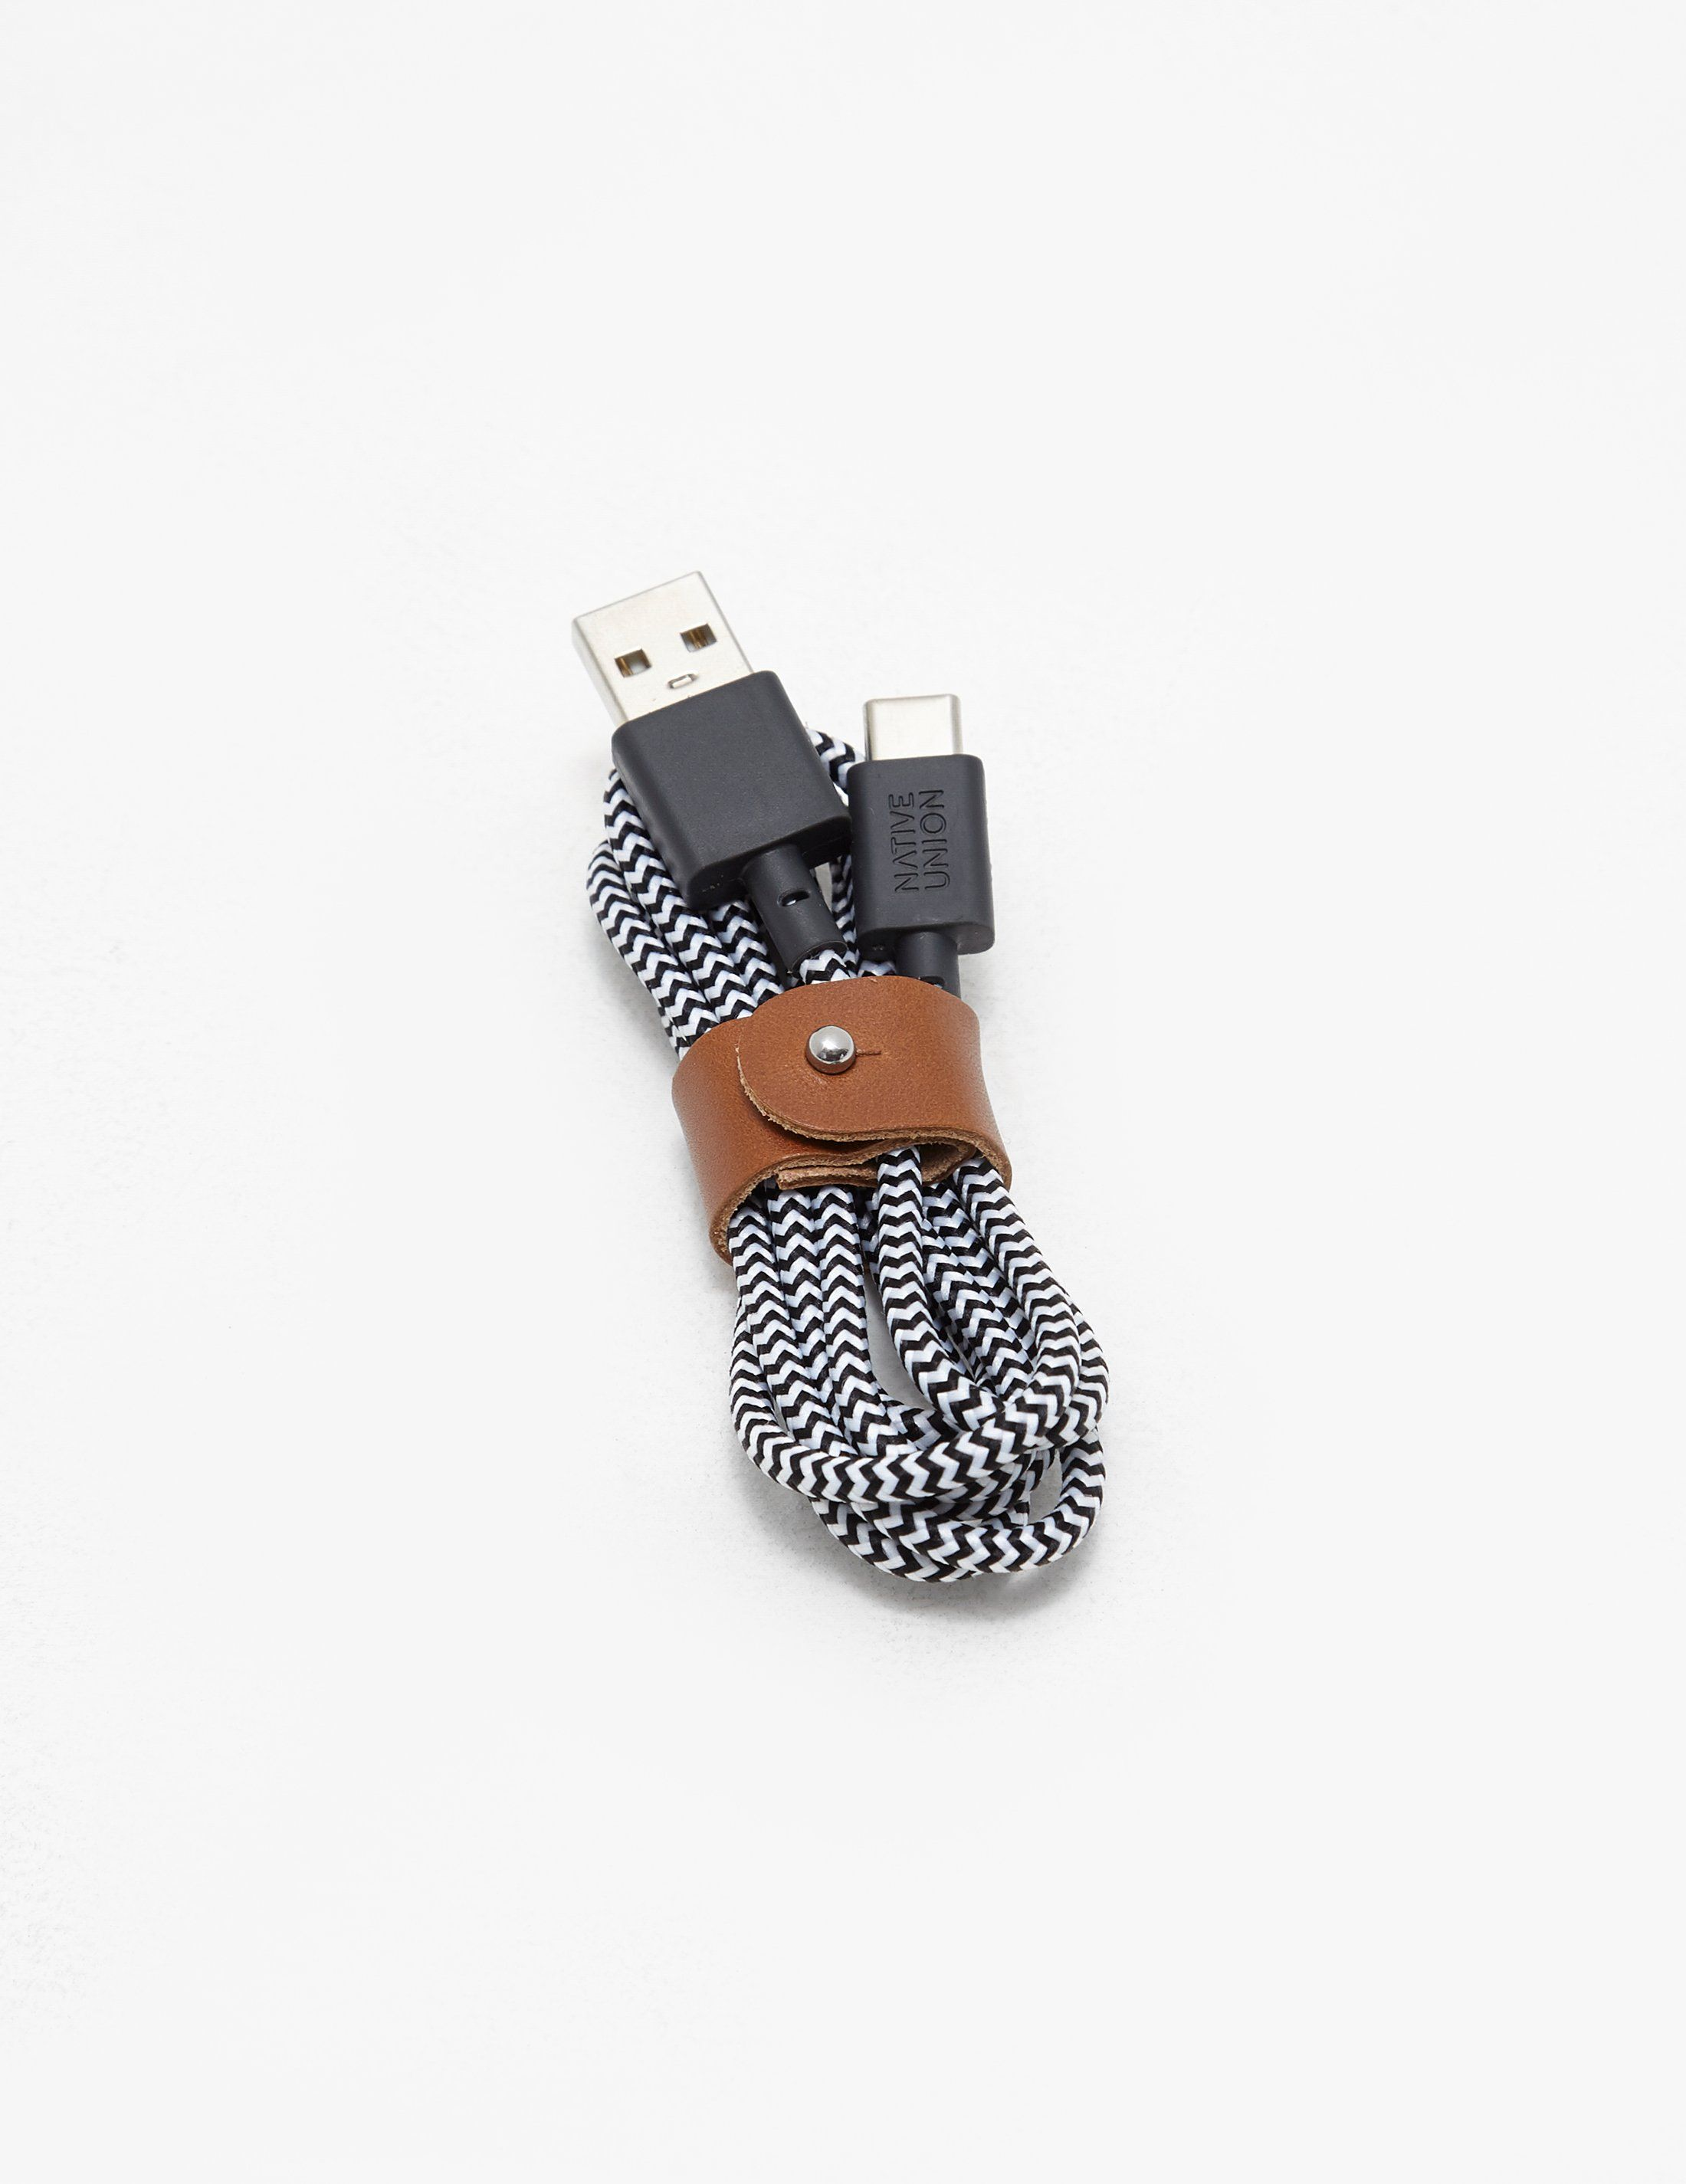 Native Union Android Charging Cable